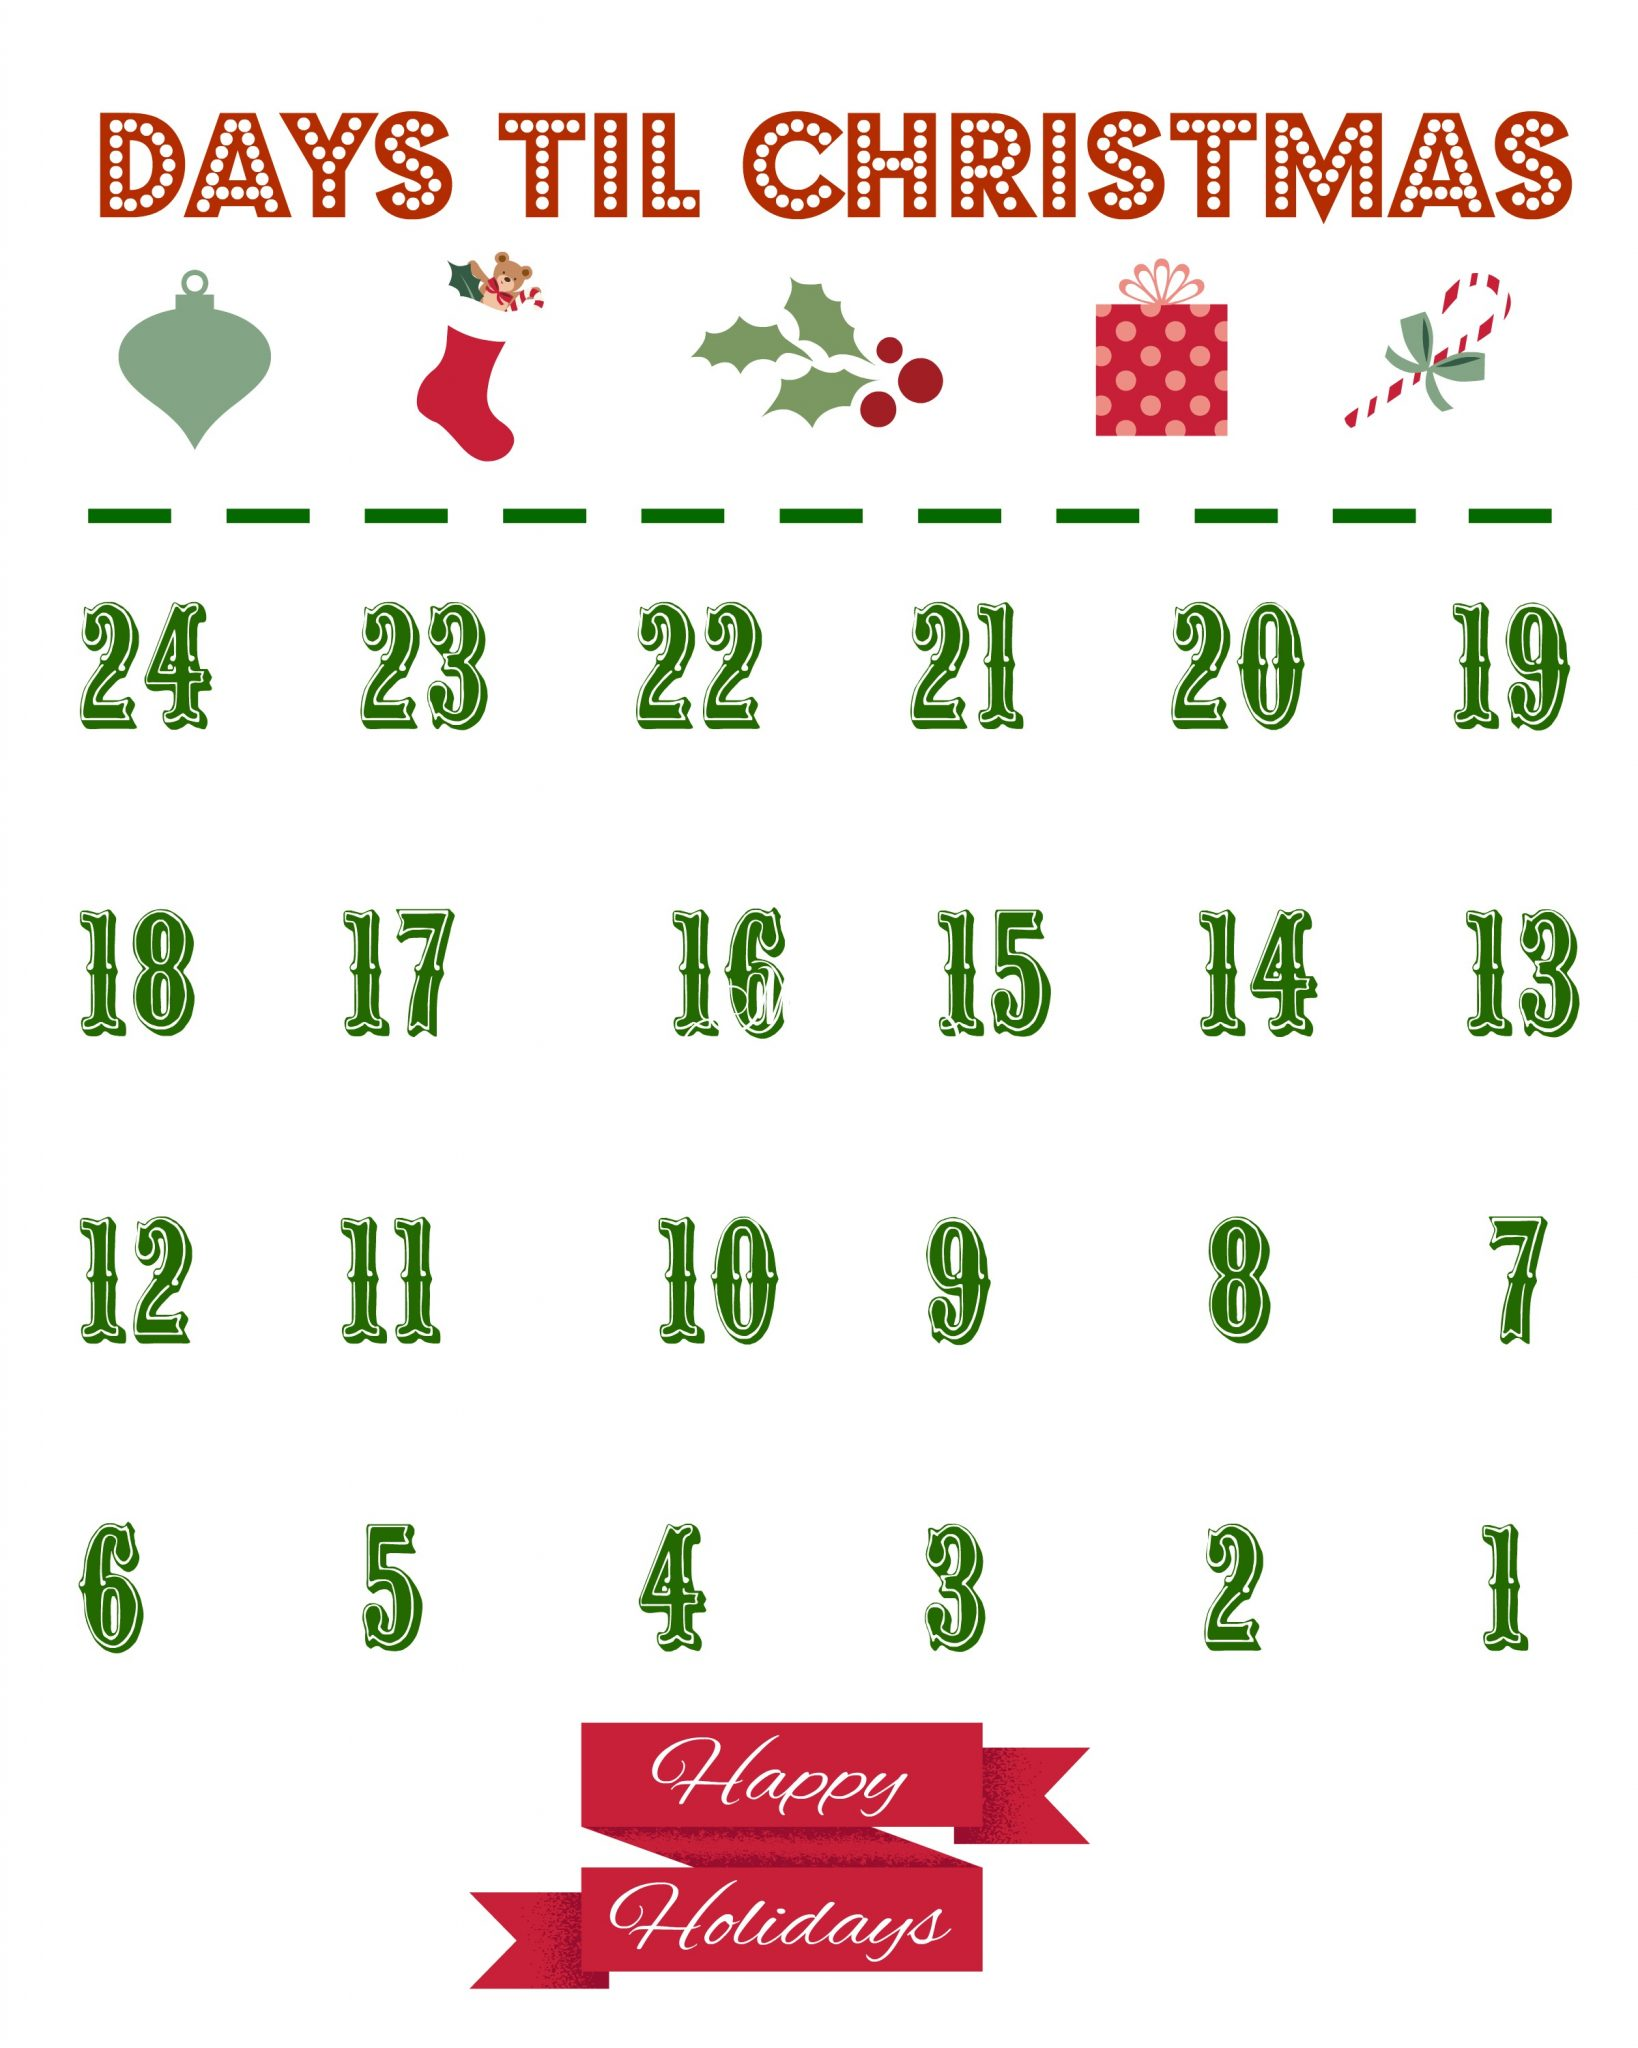 Christmas Countdown Calendar.Printable Christmas Countdown Calendar The Country Chic